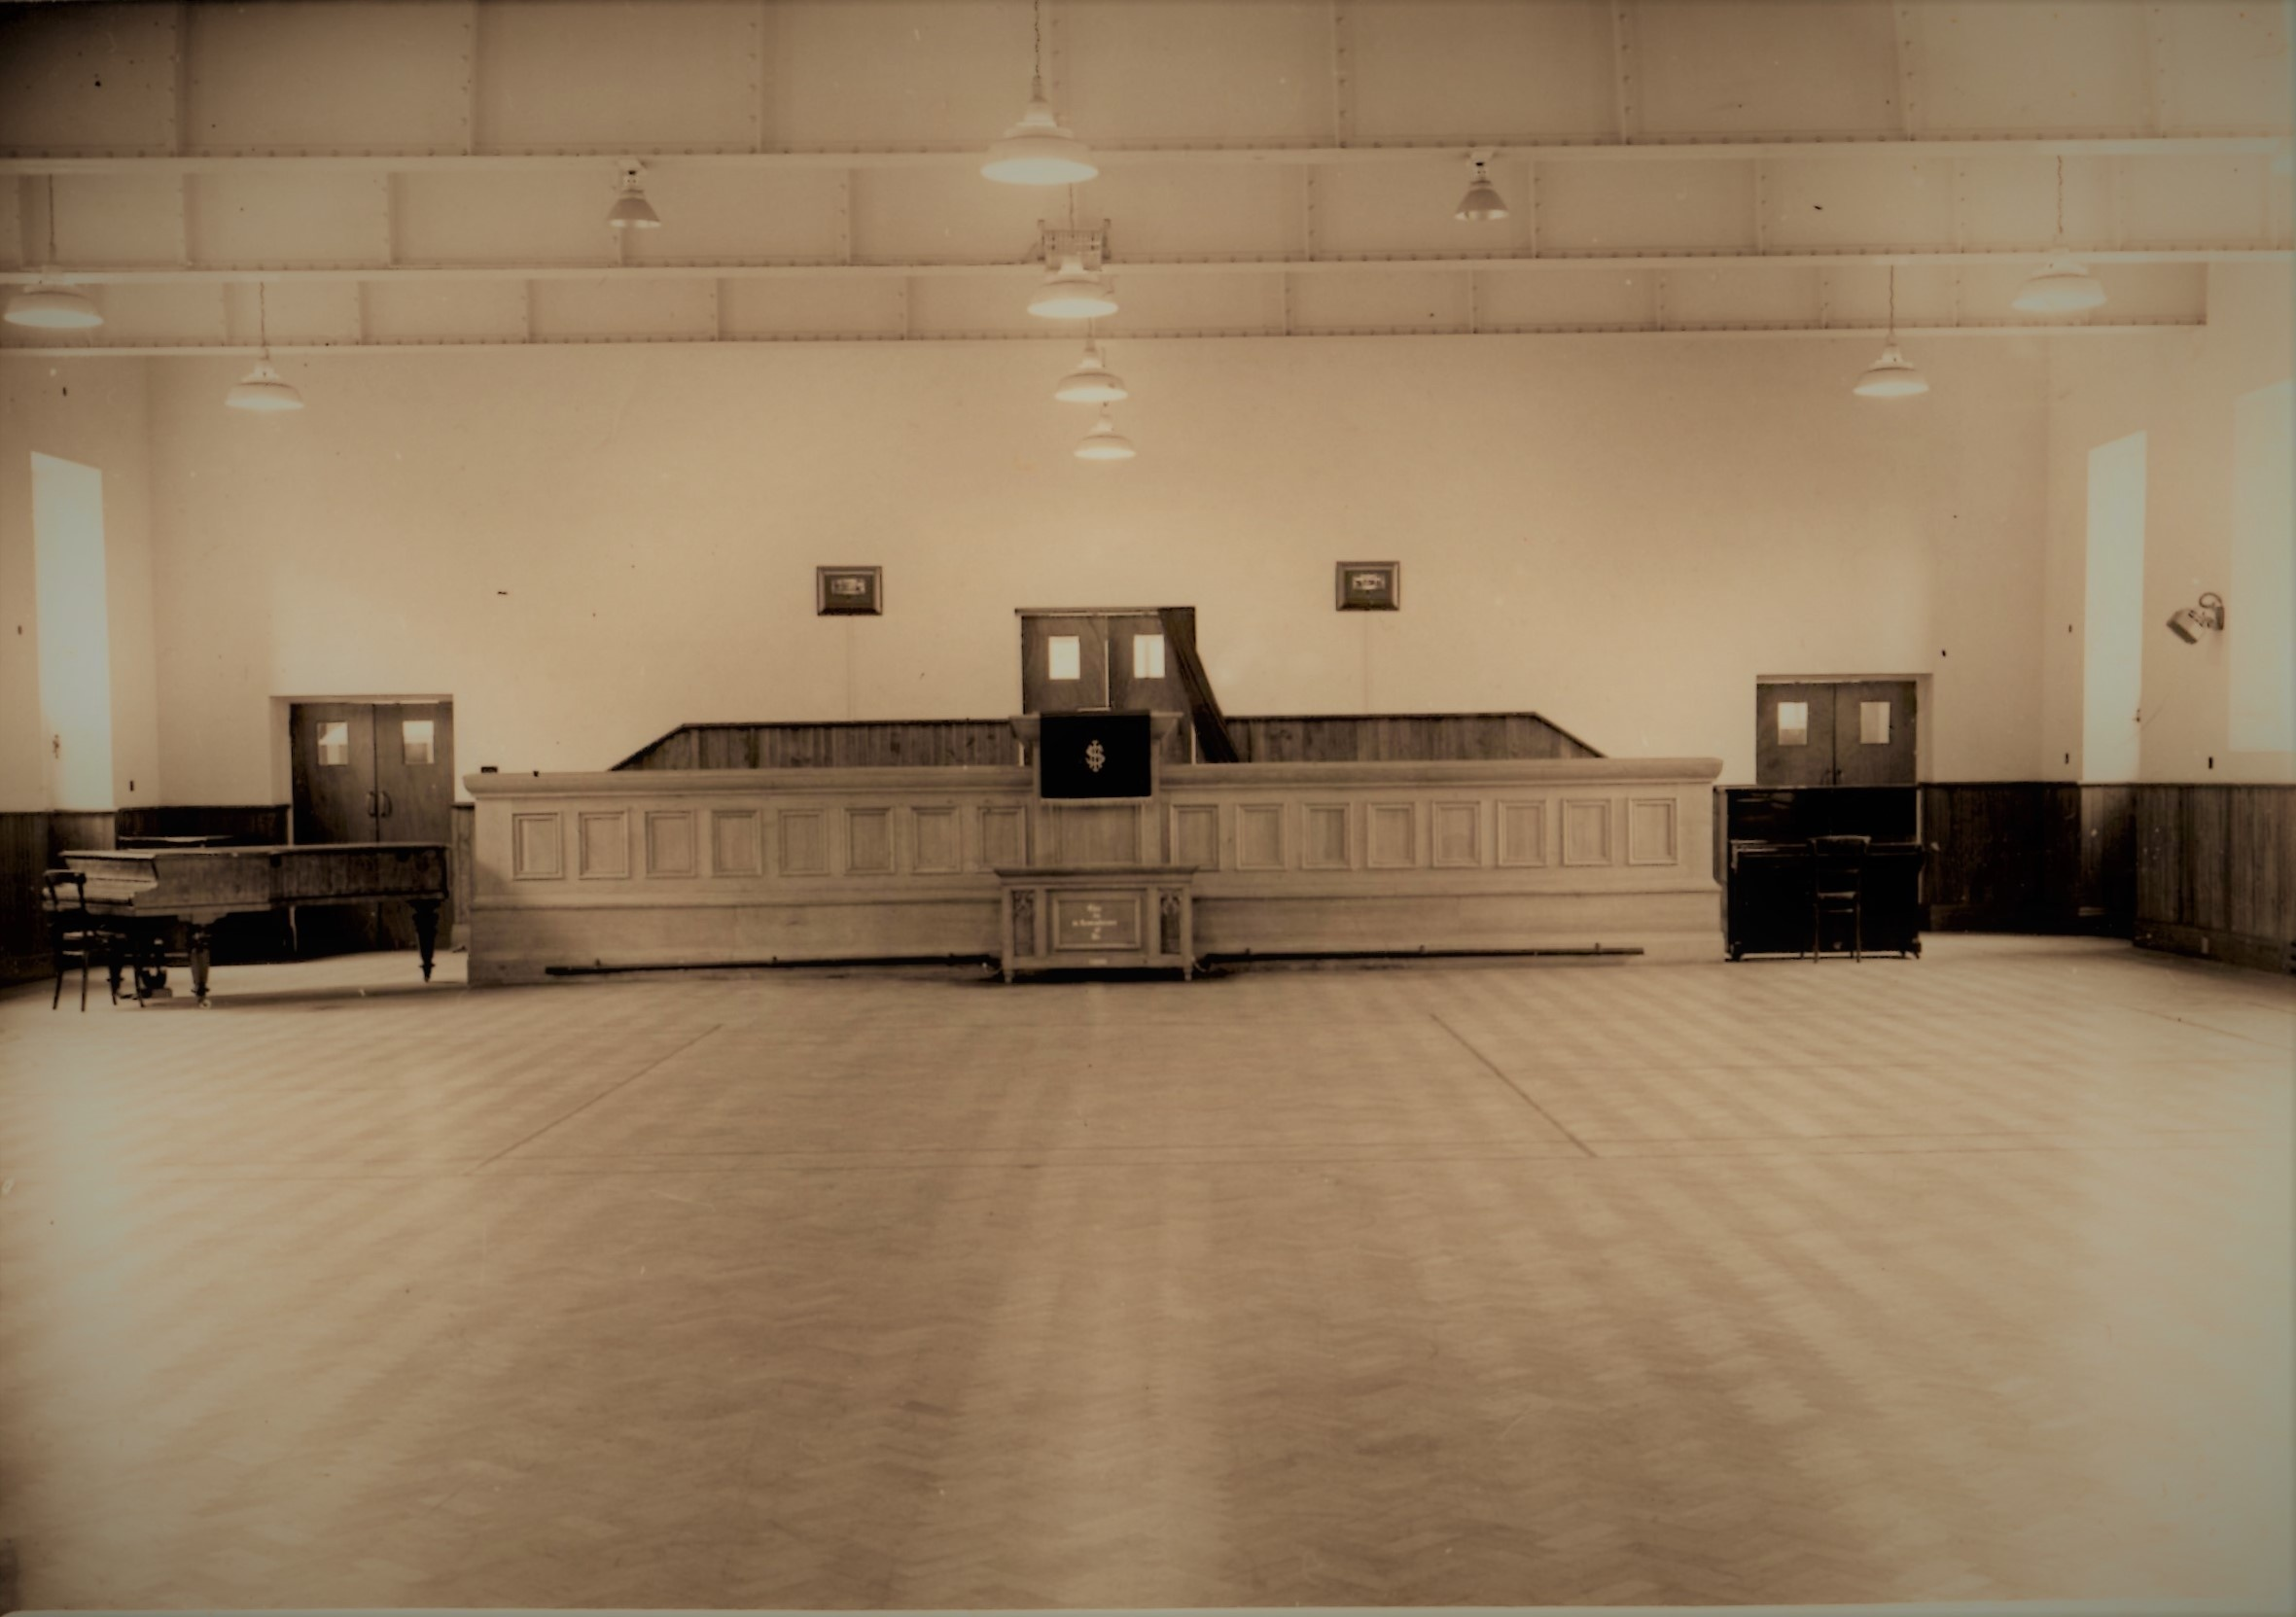 https://0201.nccdn.net/1_2/000/000/0e3/54f/SRBC---The-Large-Hall--1951-2361x1663.jpg